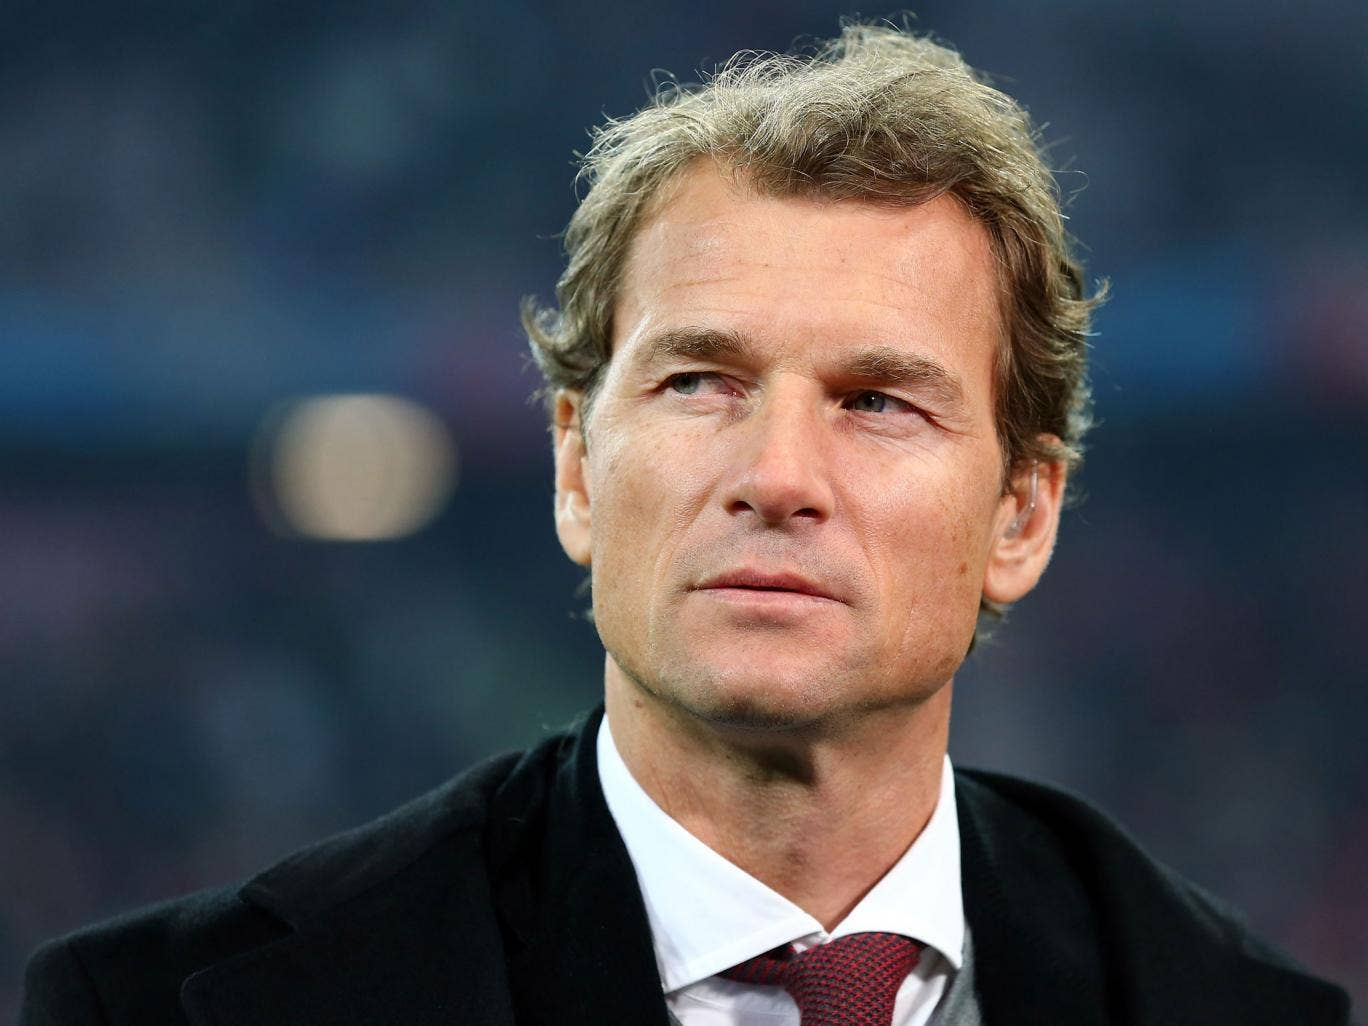 Jens Lehmann has offered a £2,000 reward for anyone that can return a bag and contents that he had stolen from him in London